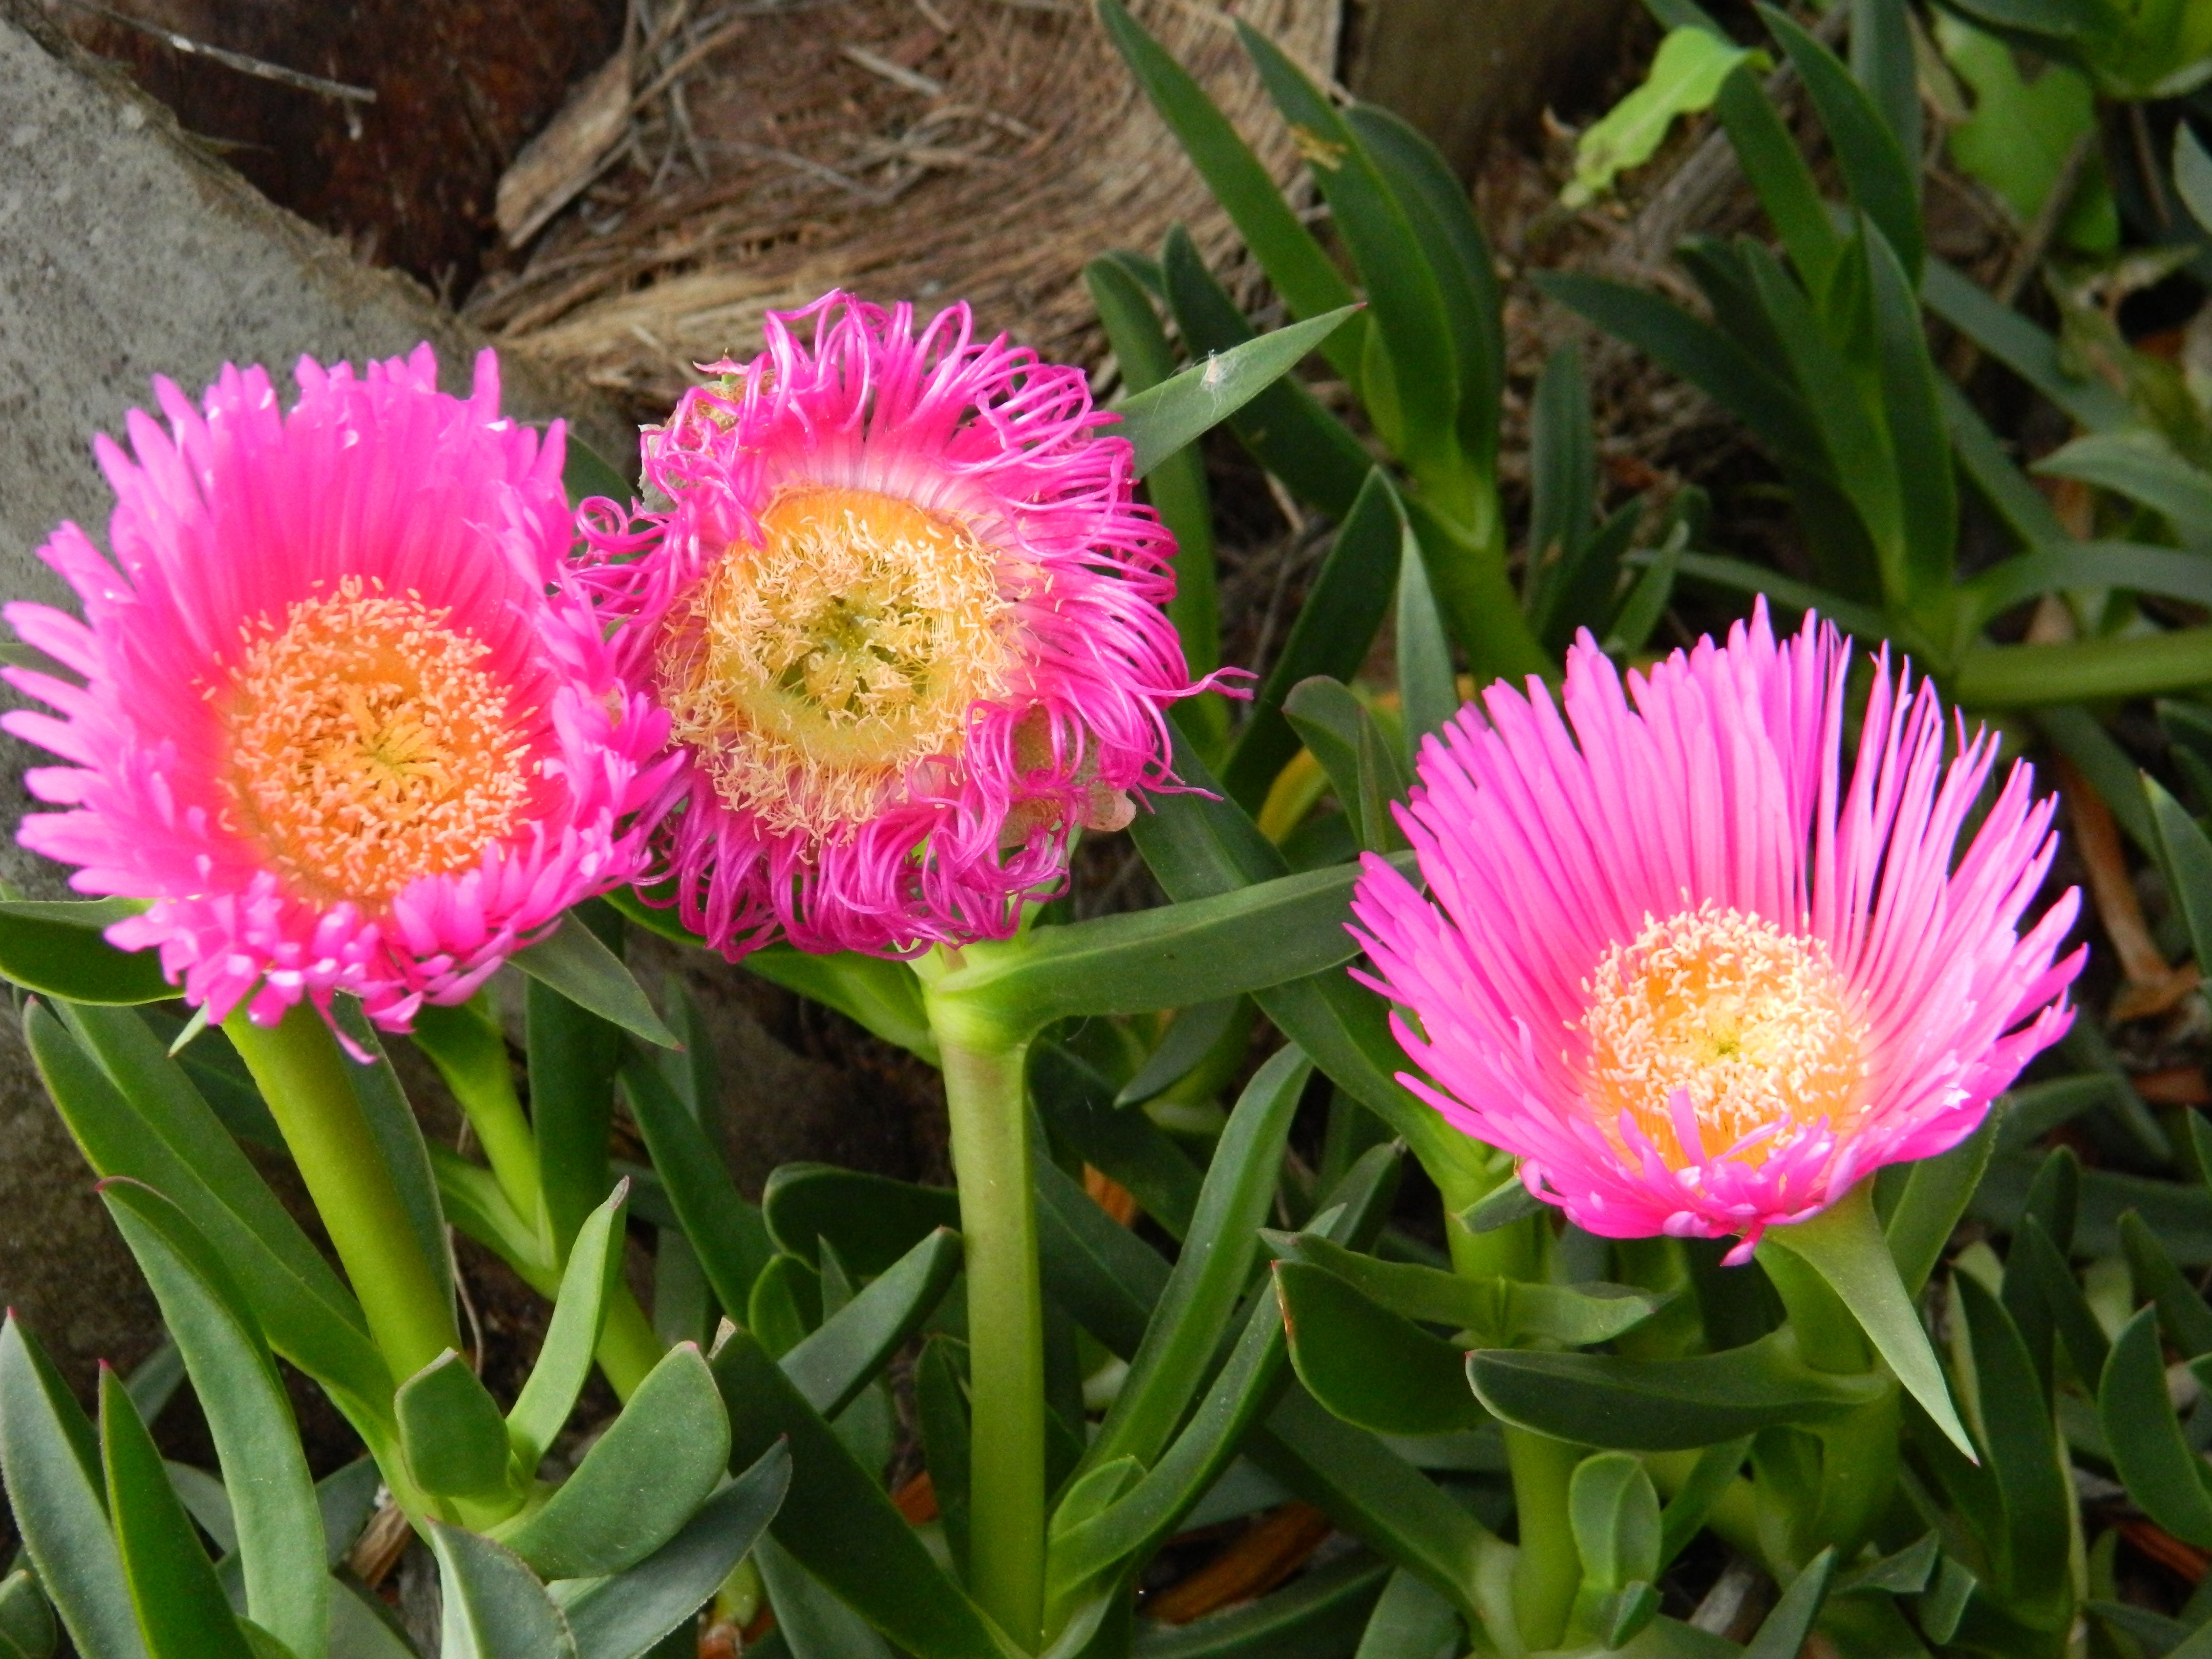 Julie Jowett tells me these are an ice plant. So beautiful.